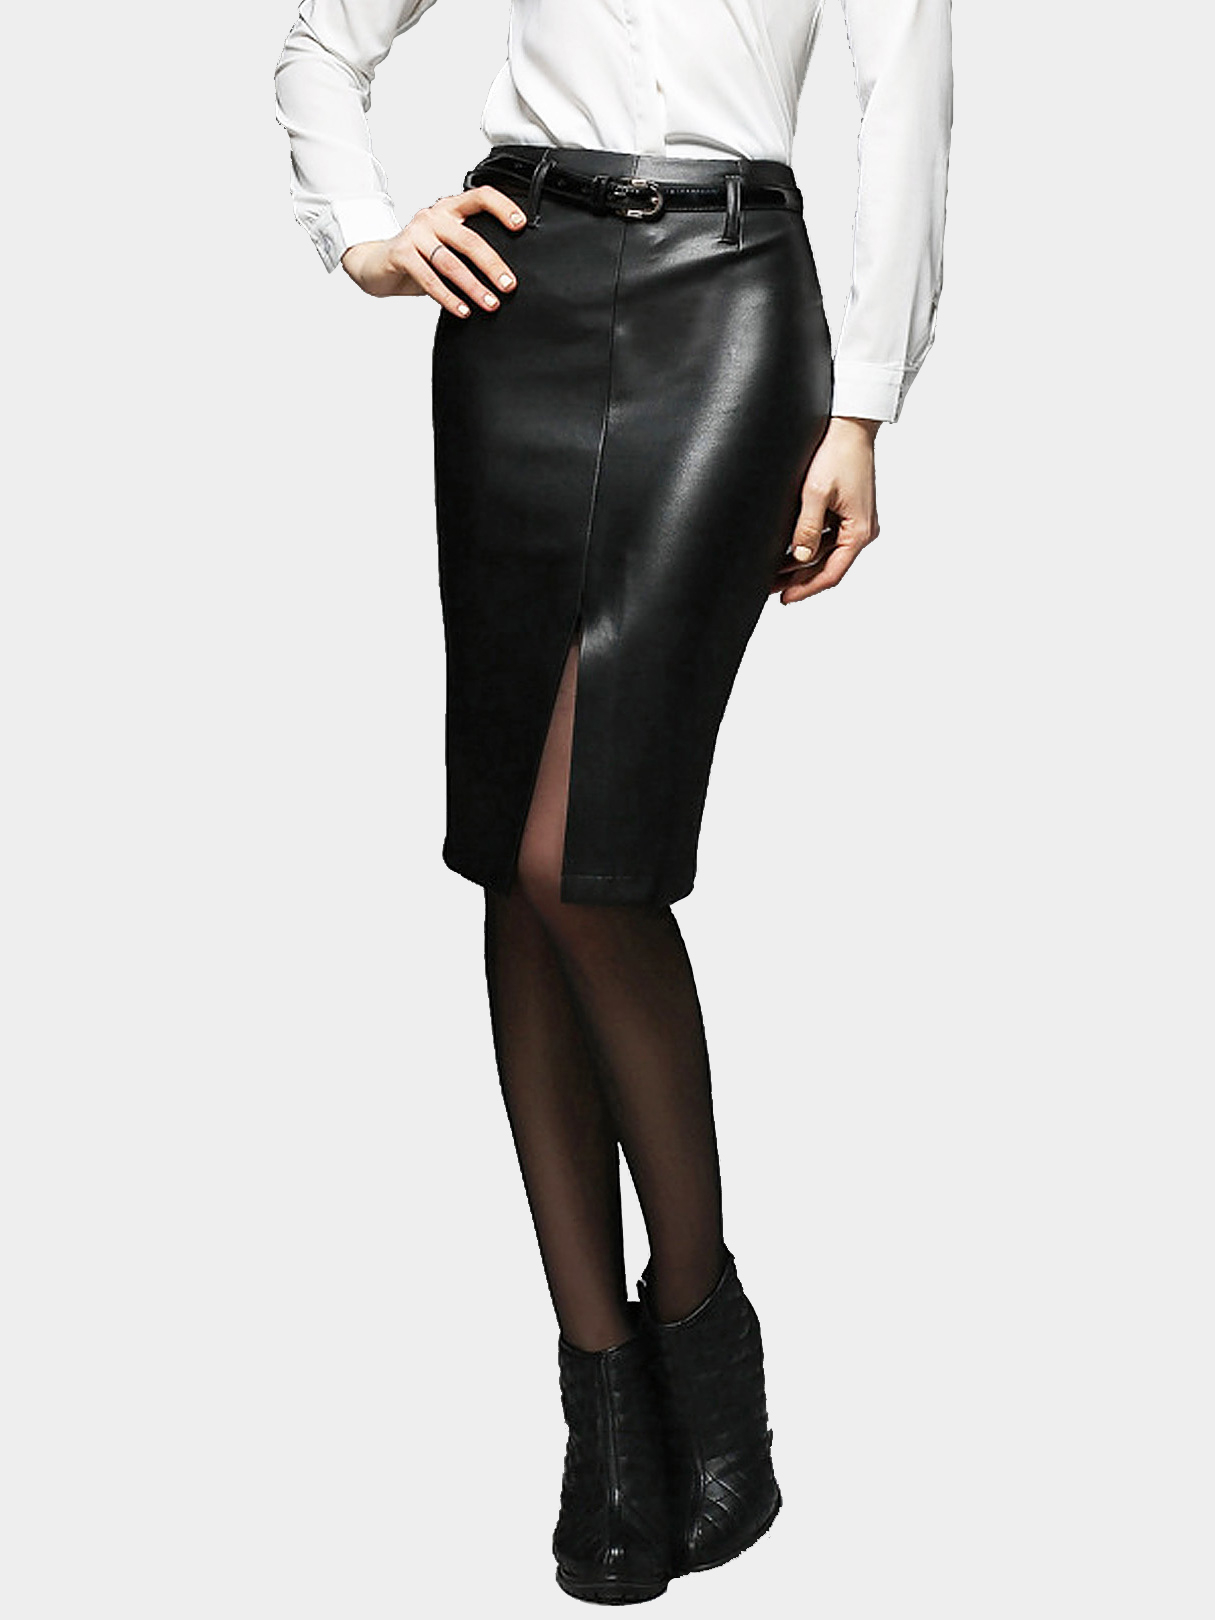 Black Midi Pencil Skirt with Belt